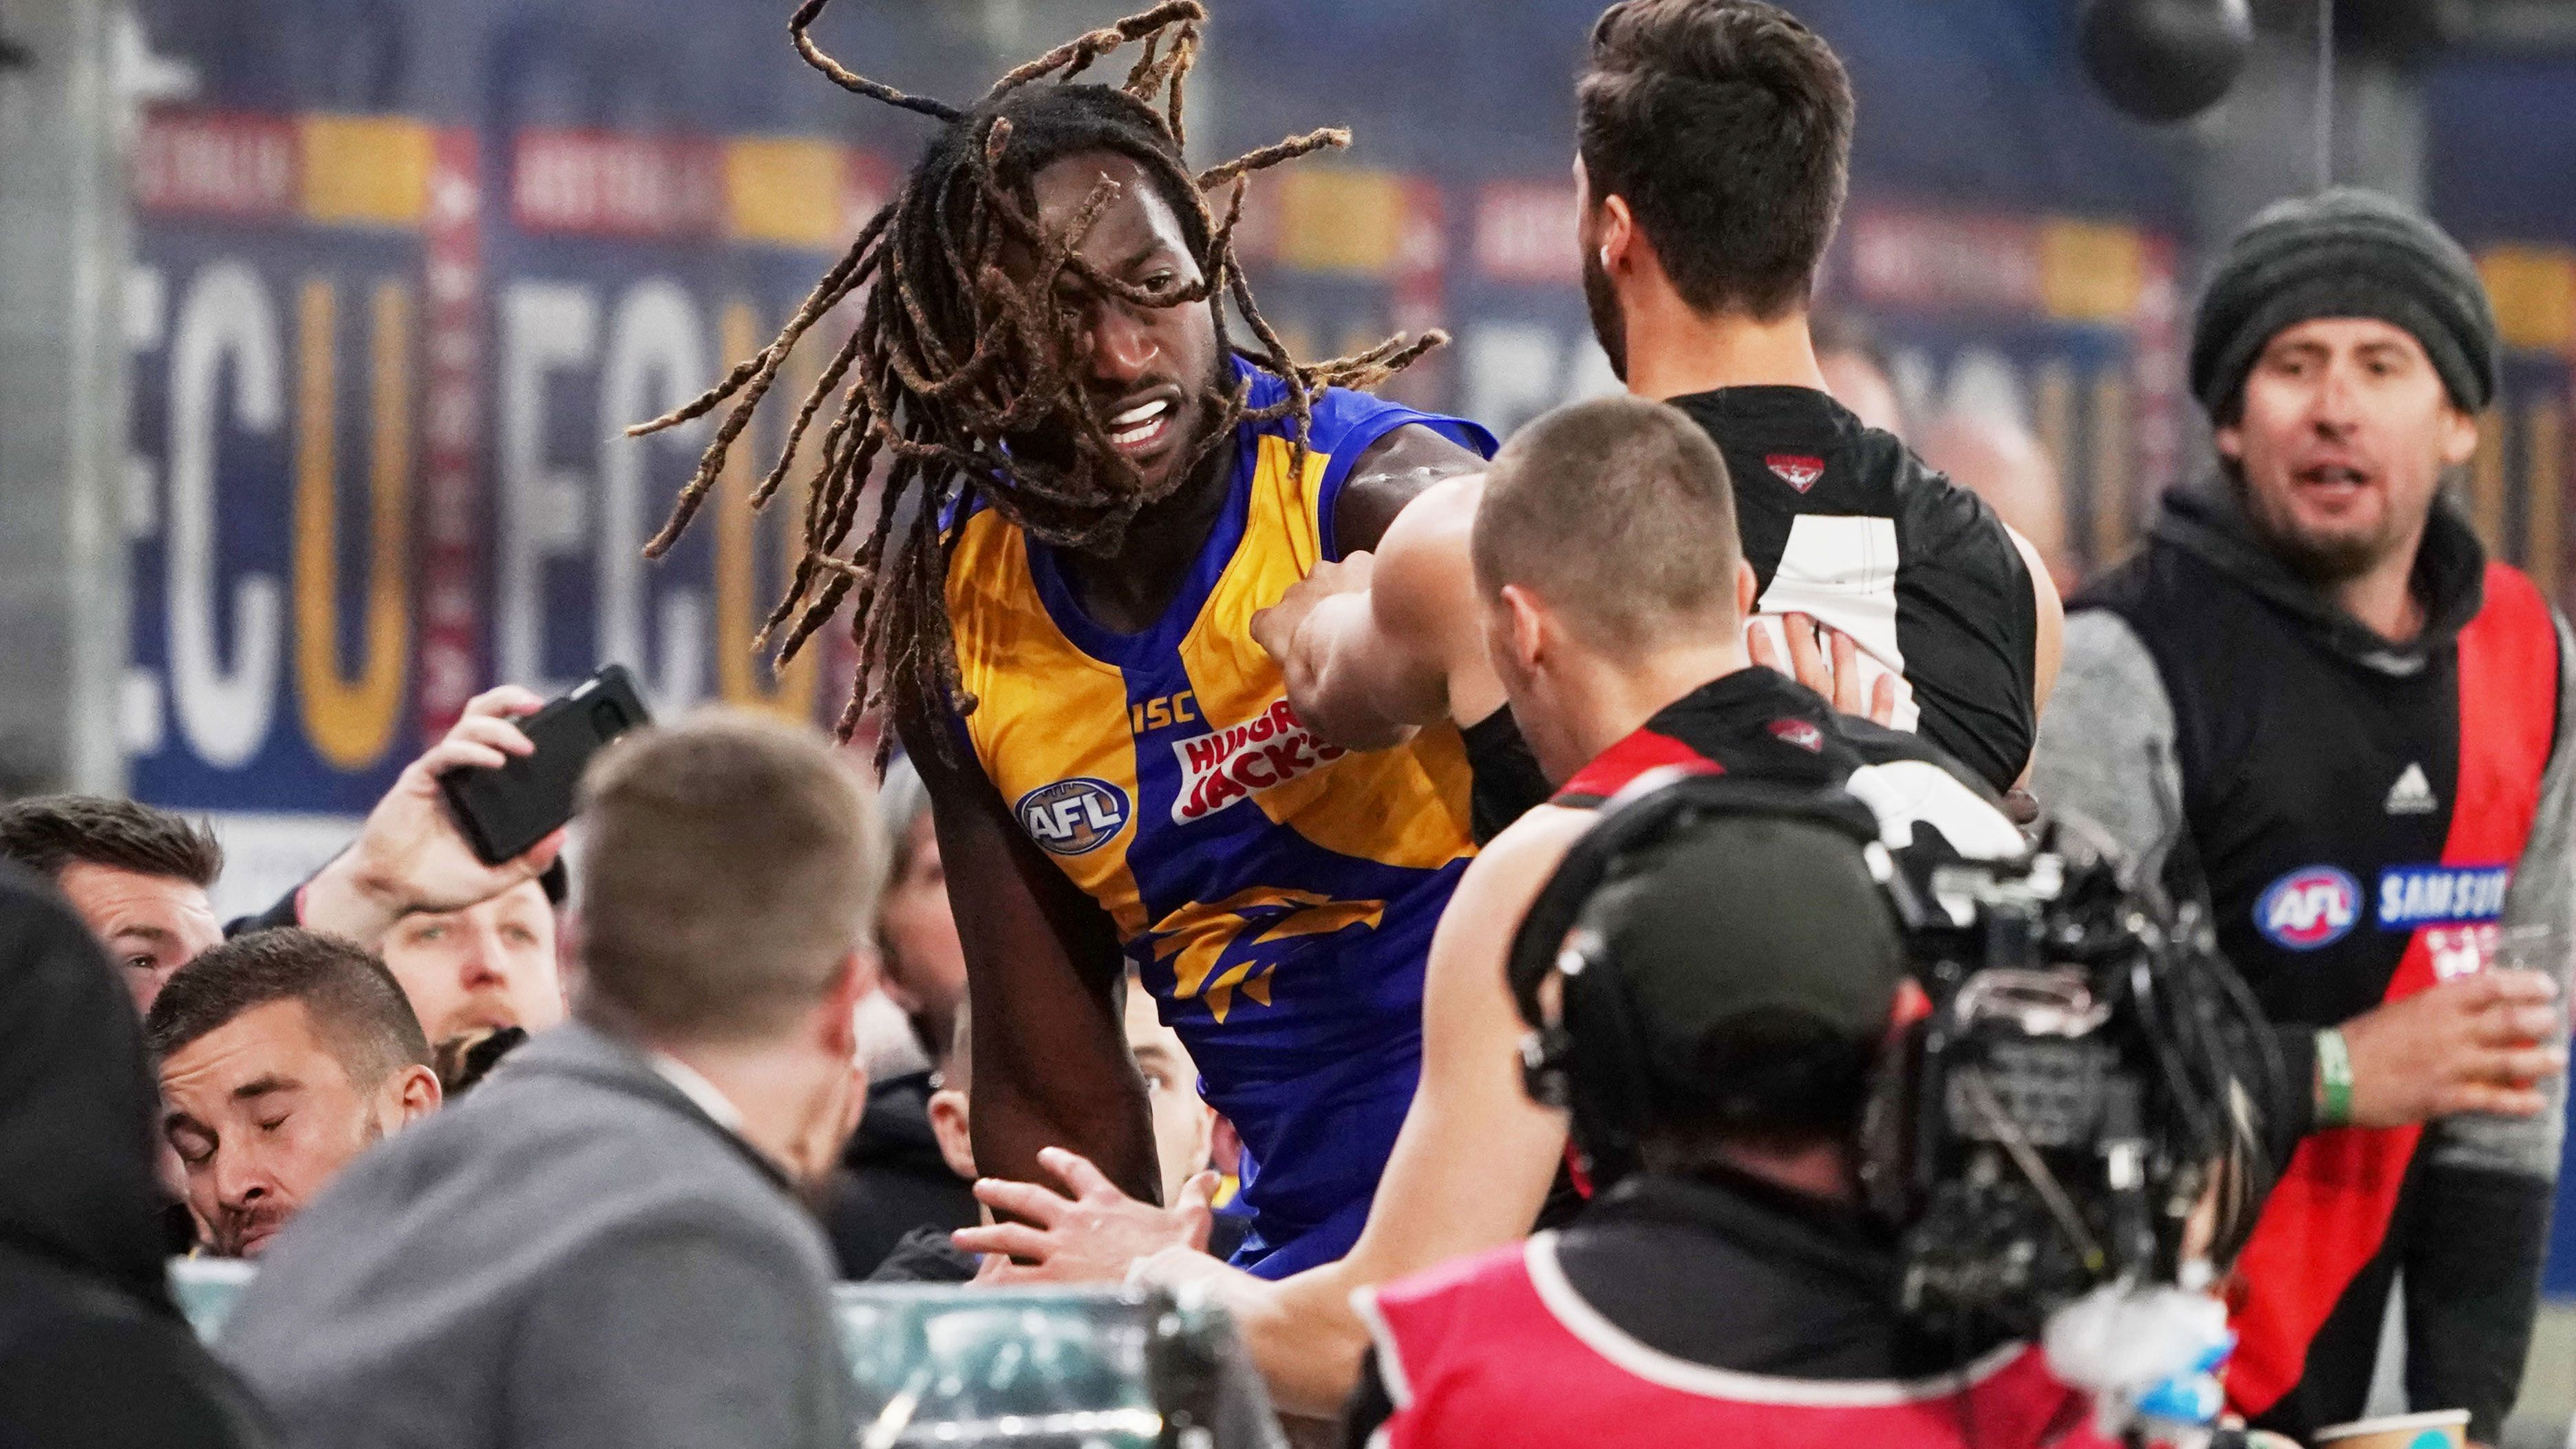 West Coast Eagles star Nic Naitanui warns opponents of potential future hair-pulling